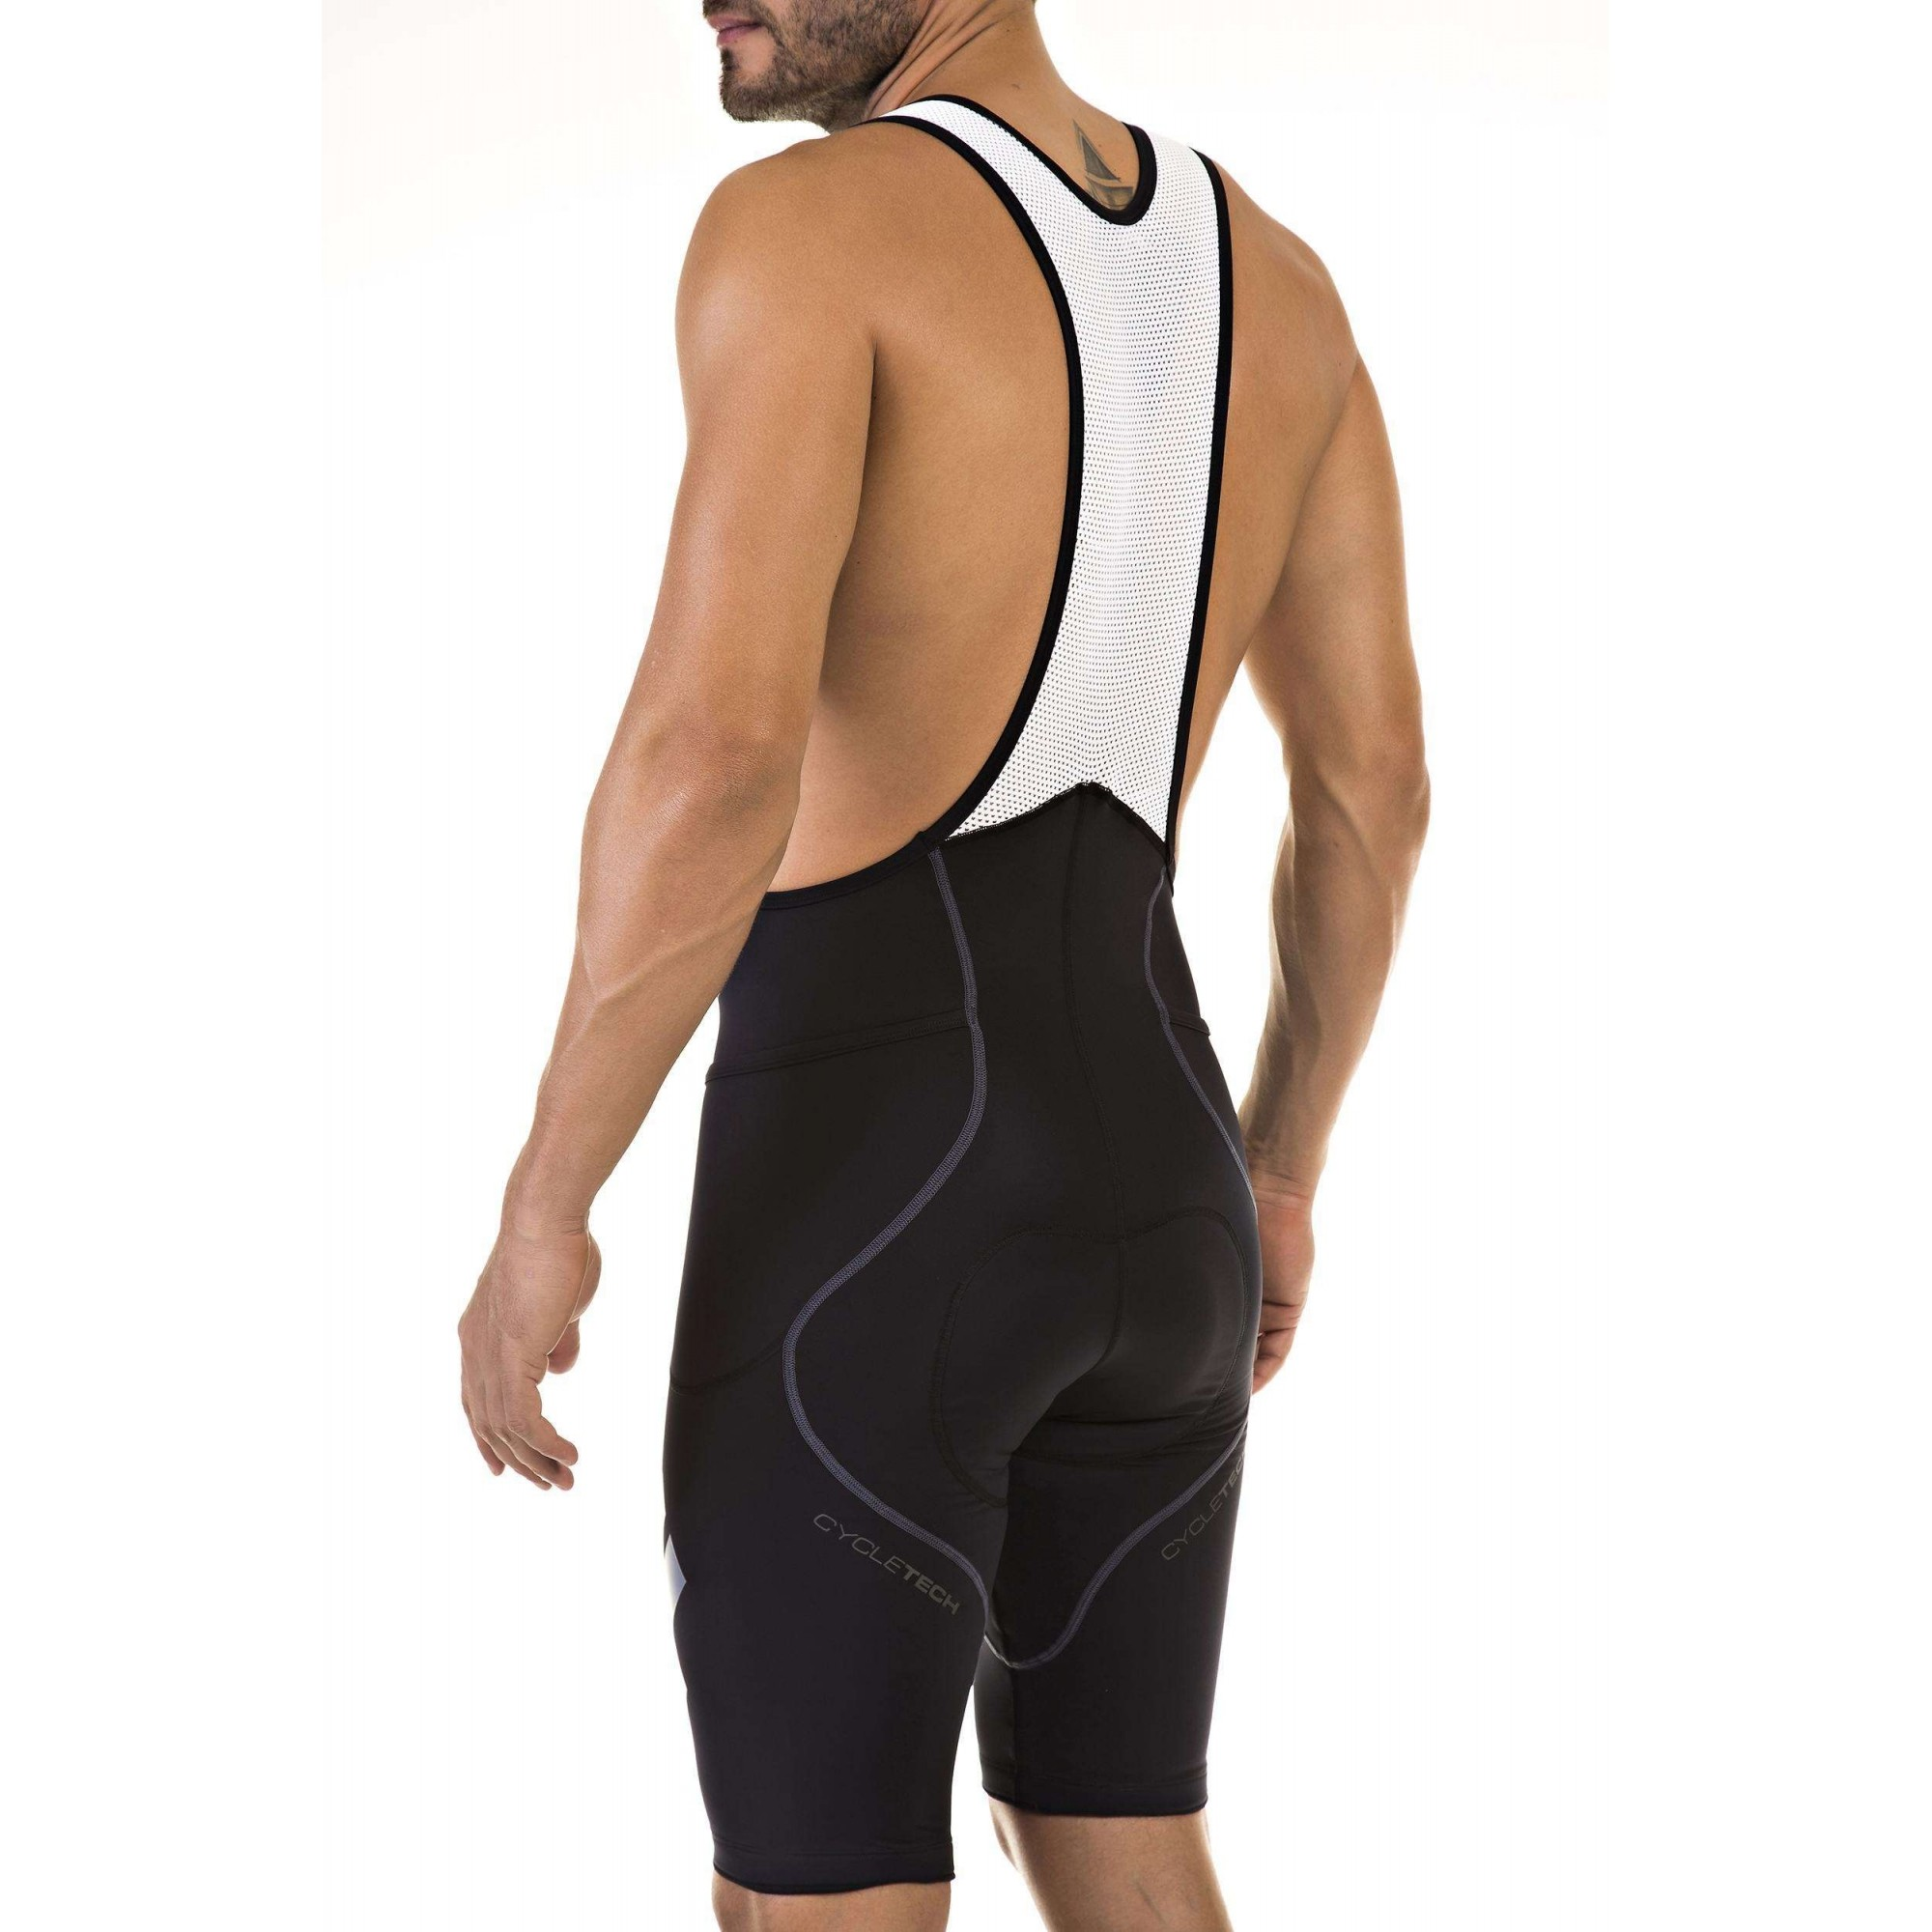 BRETELLE FLETS MASCULINO BASIC COMPRESSION PRETO